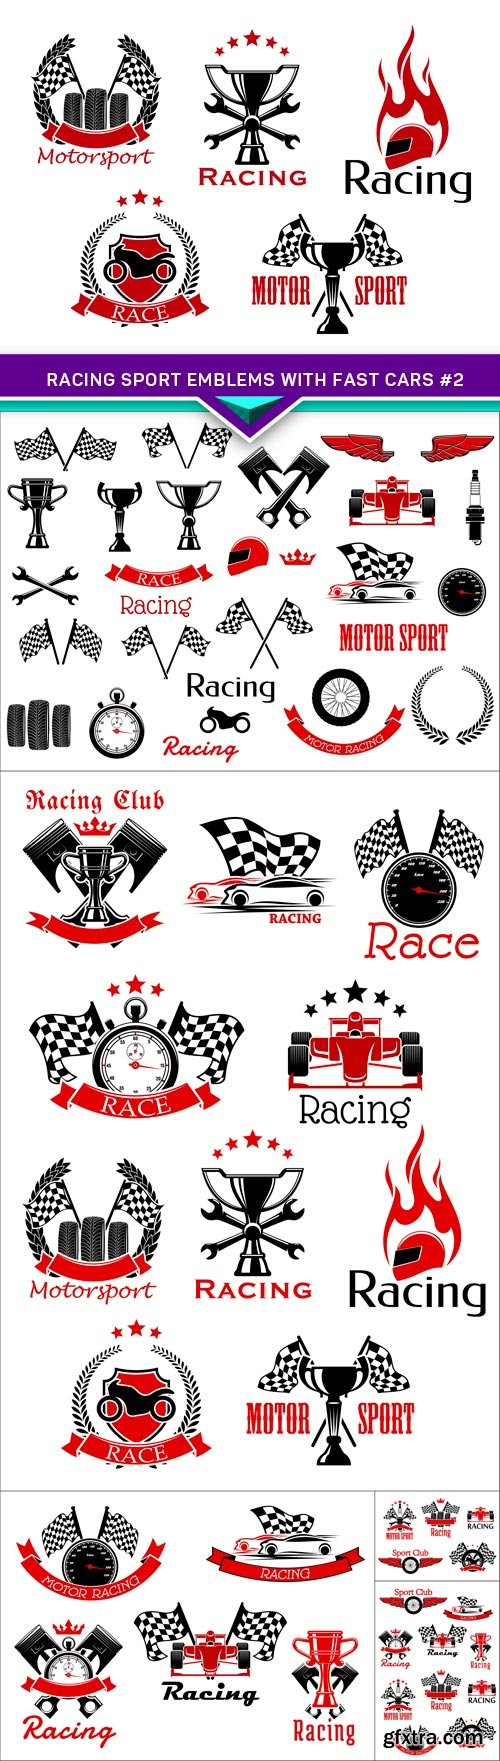 Racing sport emblems with fast cars #2 6X EPS